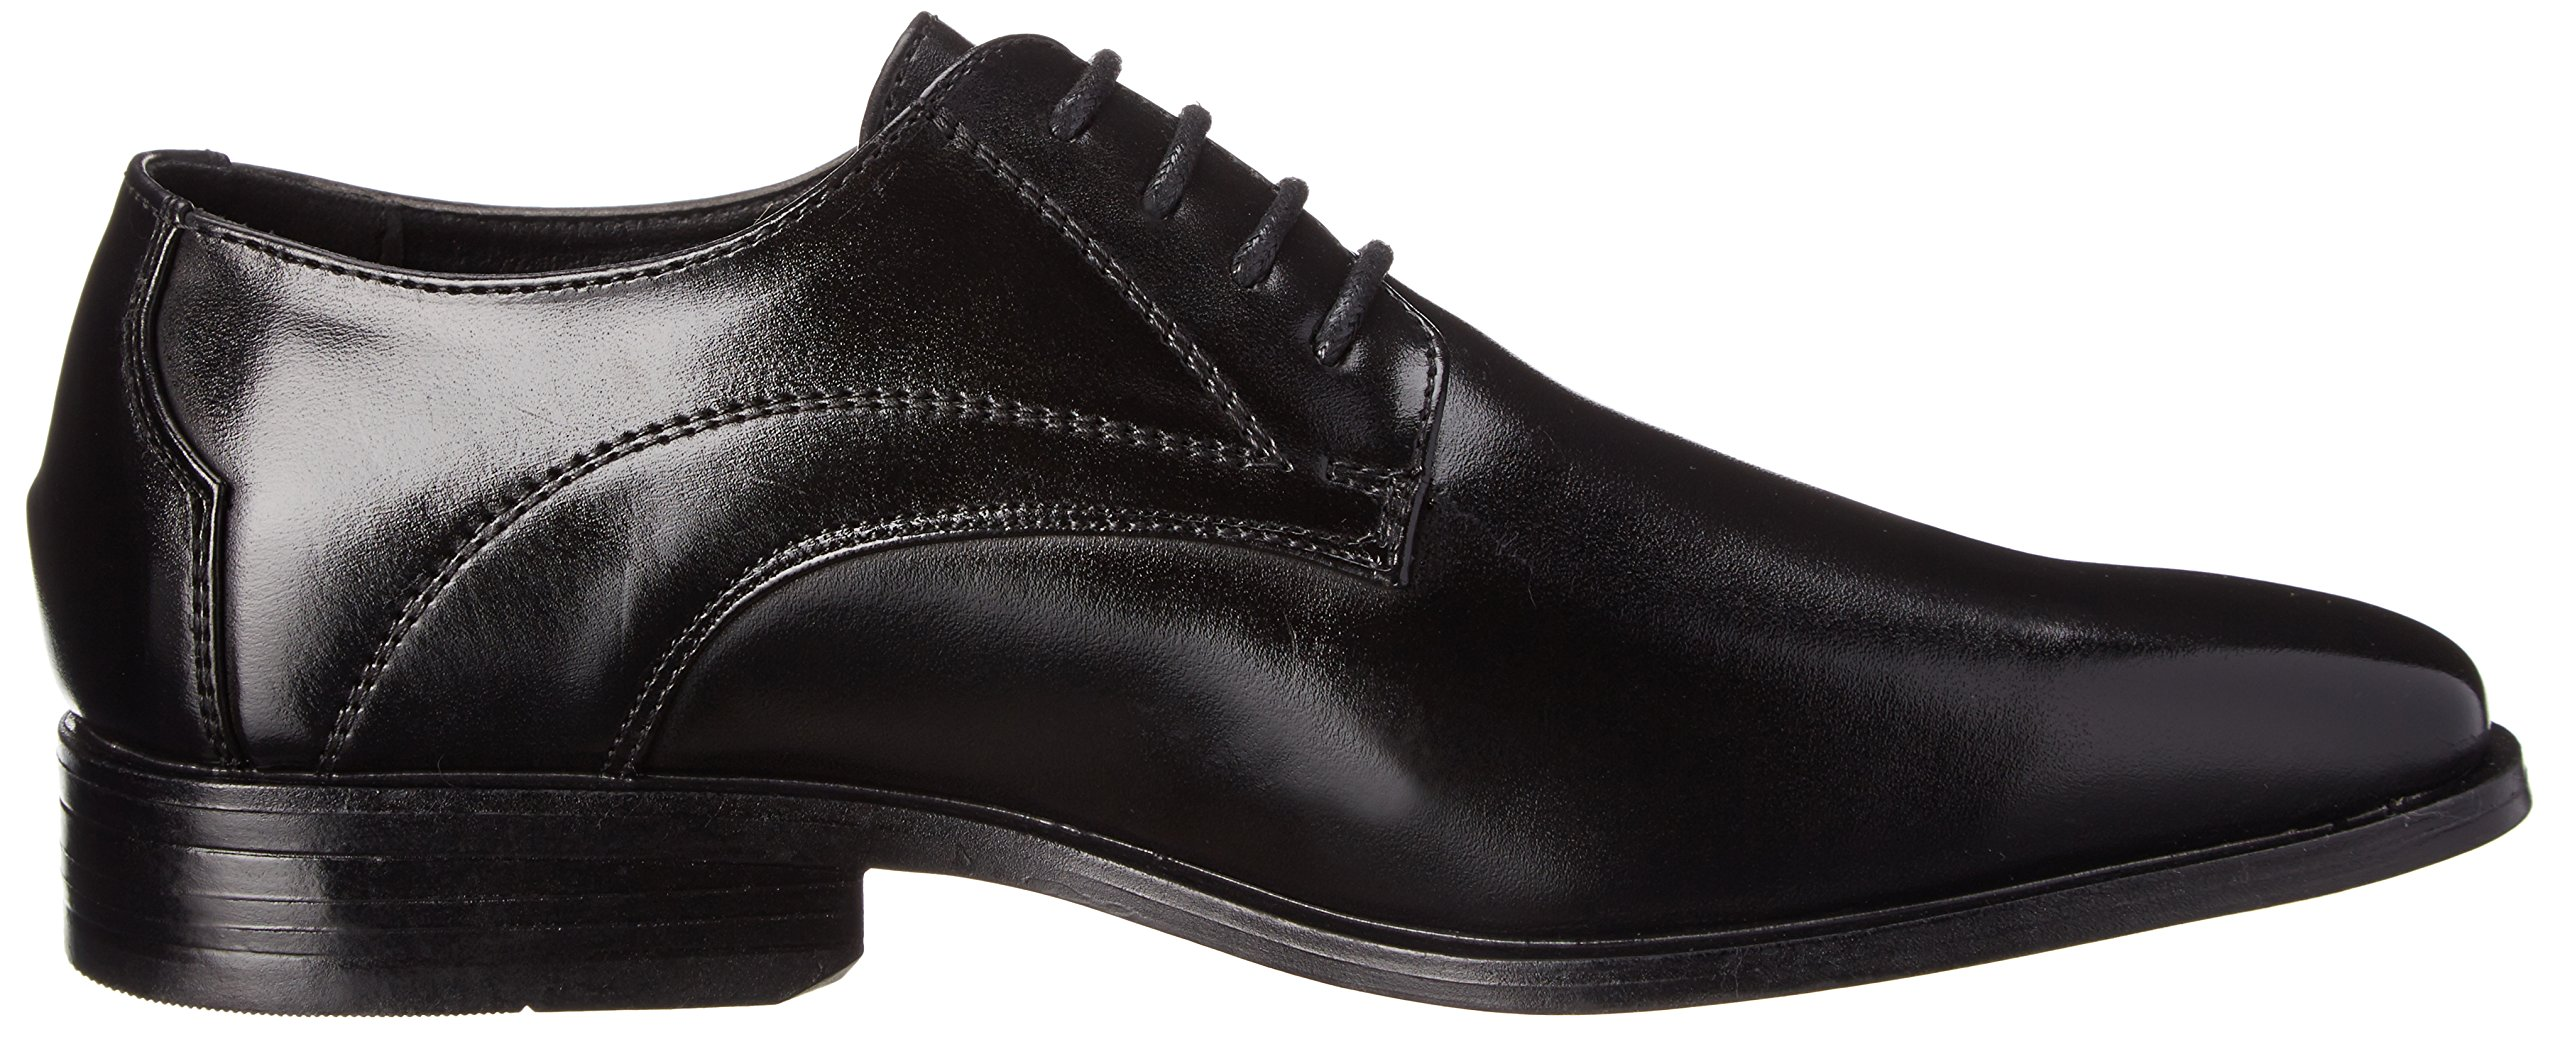 Stacy Adams Carmichael Plain Toe Lace-up Uniform Oxford Dress Shoe (Little Kid/Big Kid),Black,4 M US Big Kid by STACY ADAMS (Image #7)